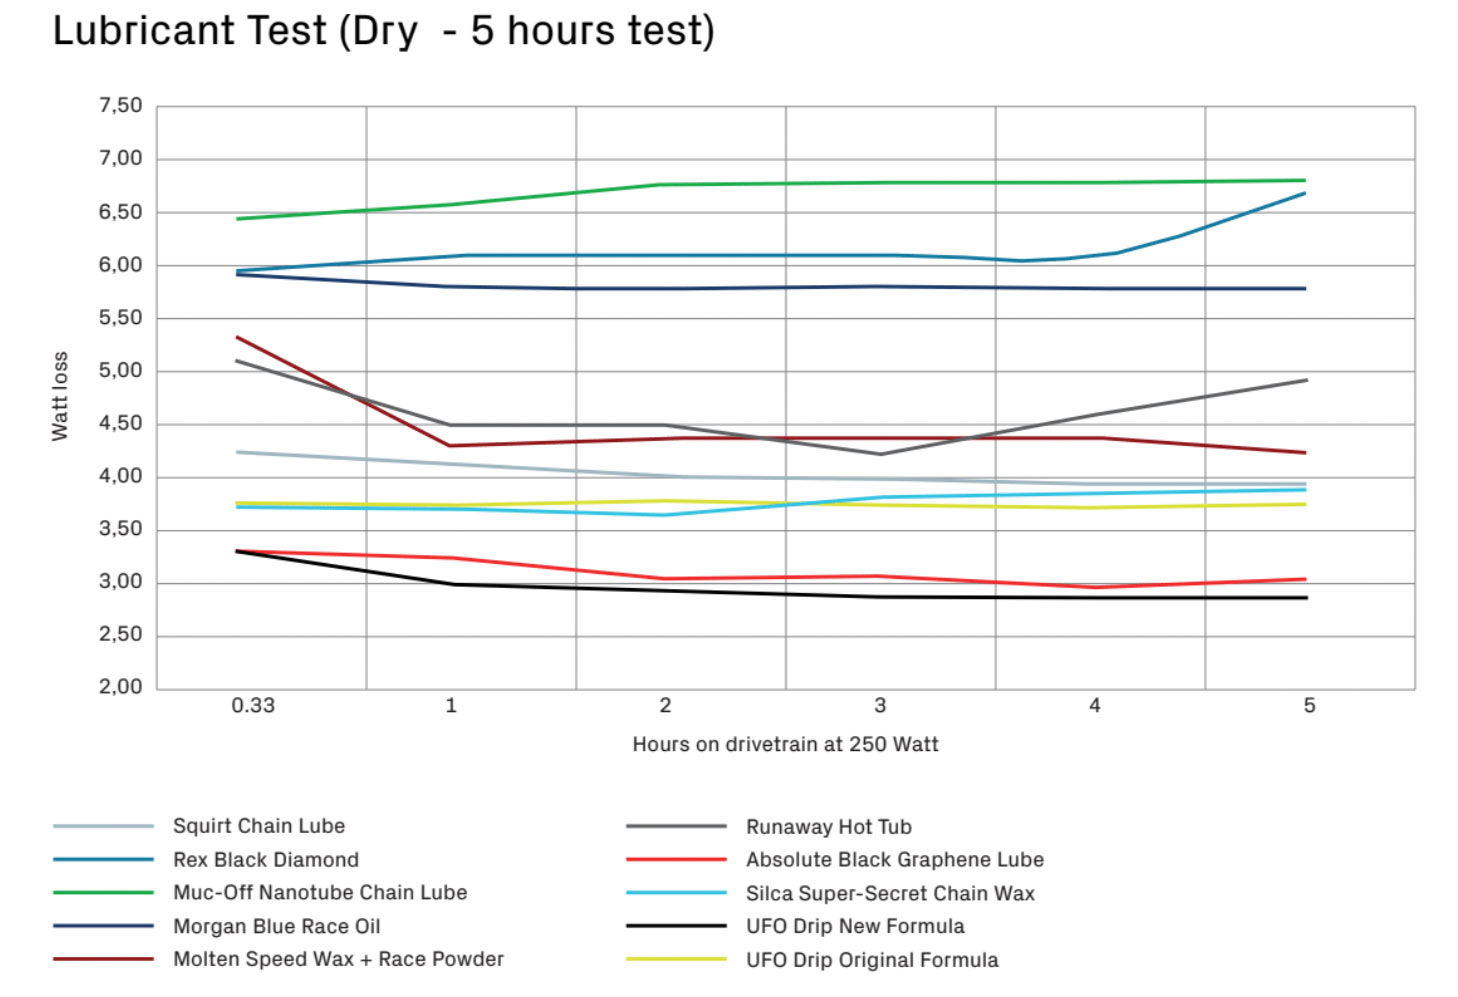 ceramic speed ufo drip lube friction comparison chart to other top bicycle chain lubes